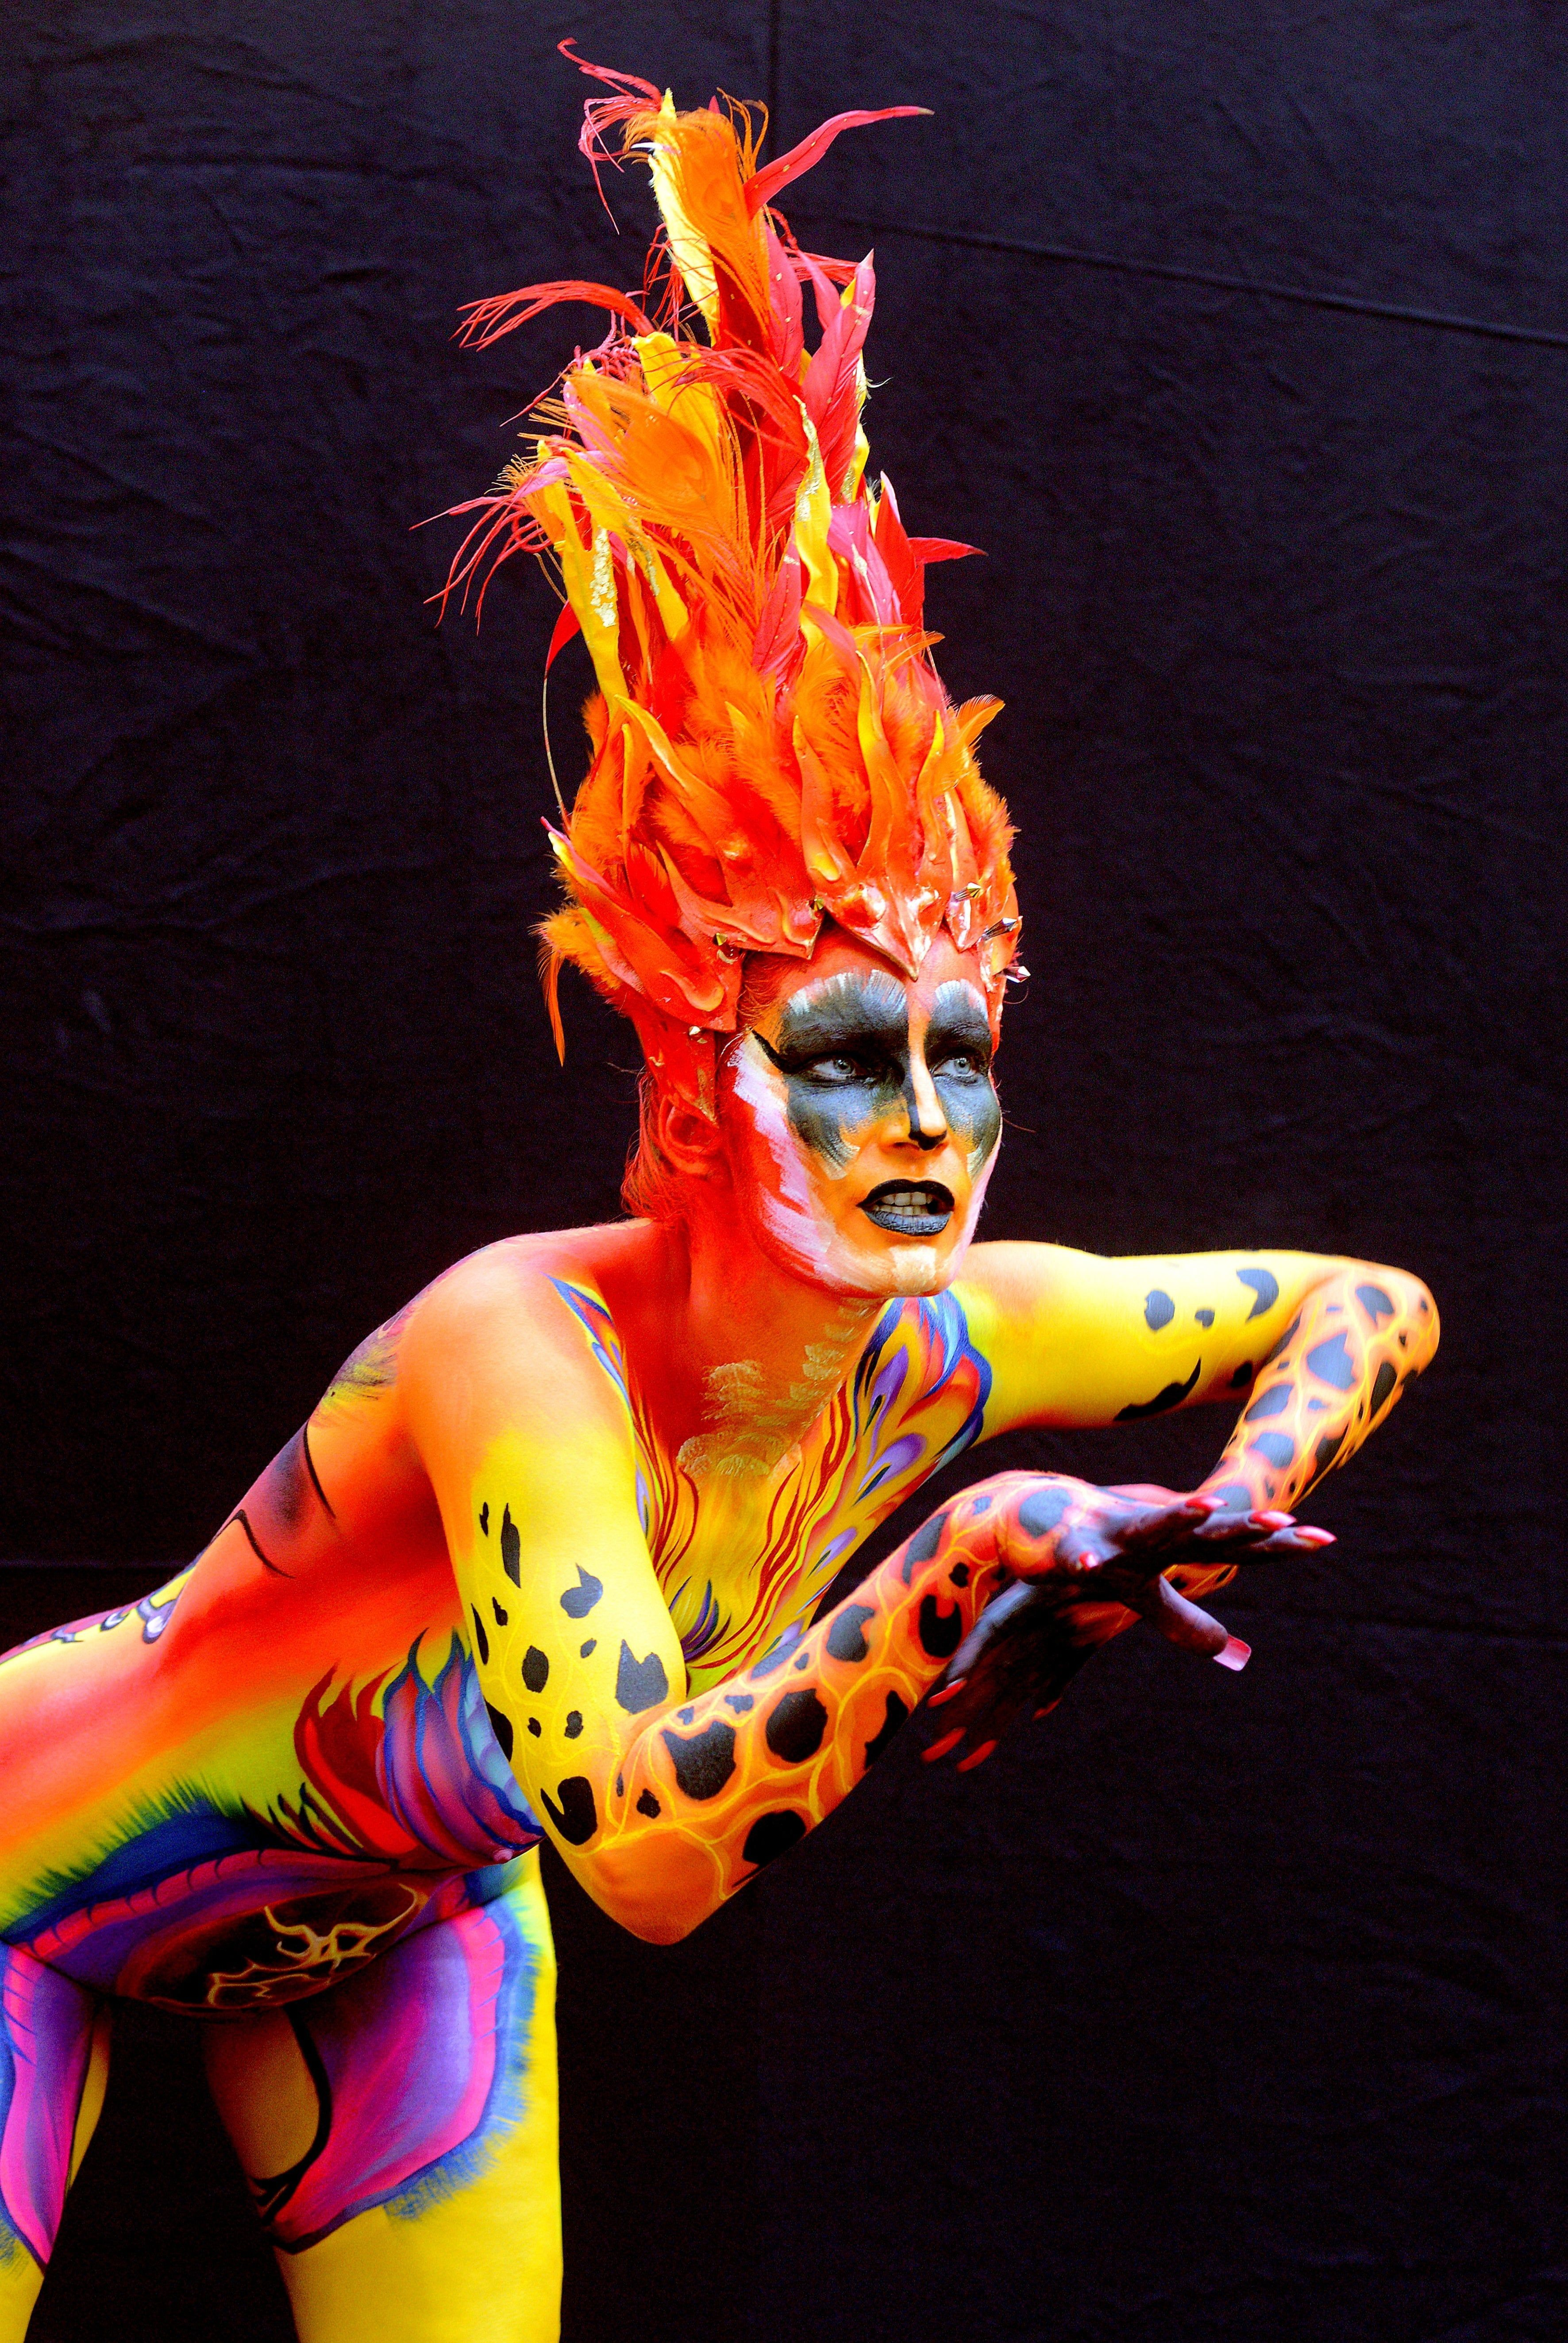 Body painting festival in austria in pictures